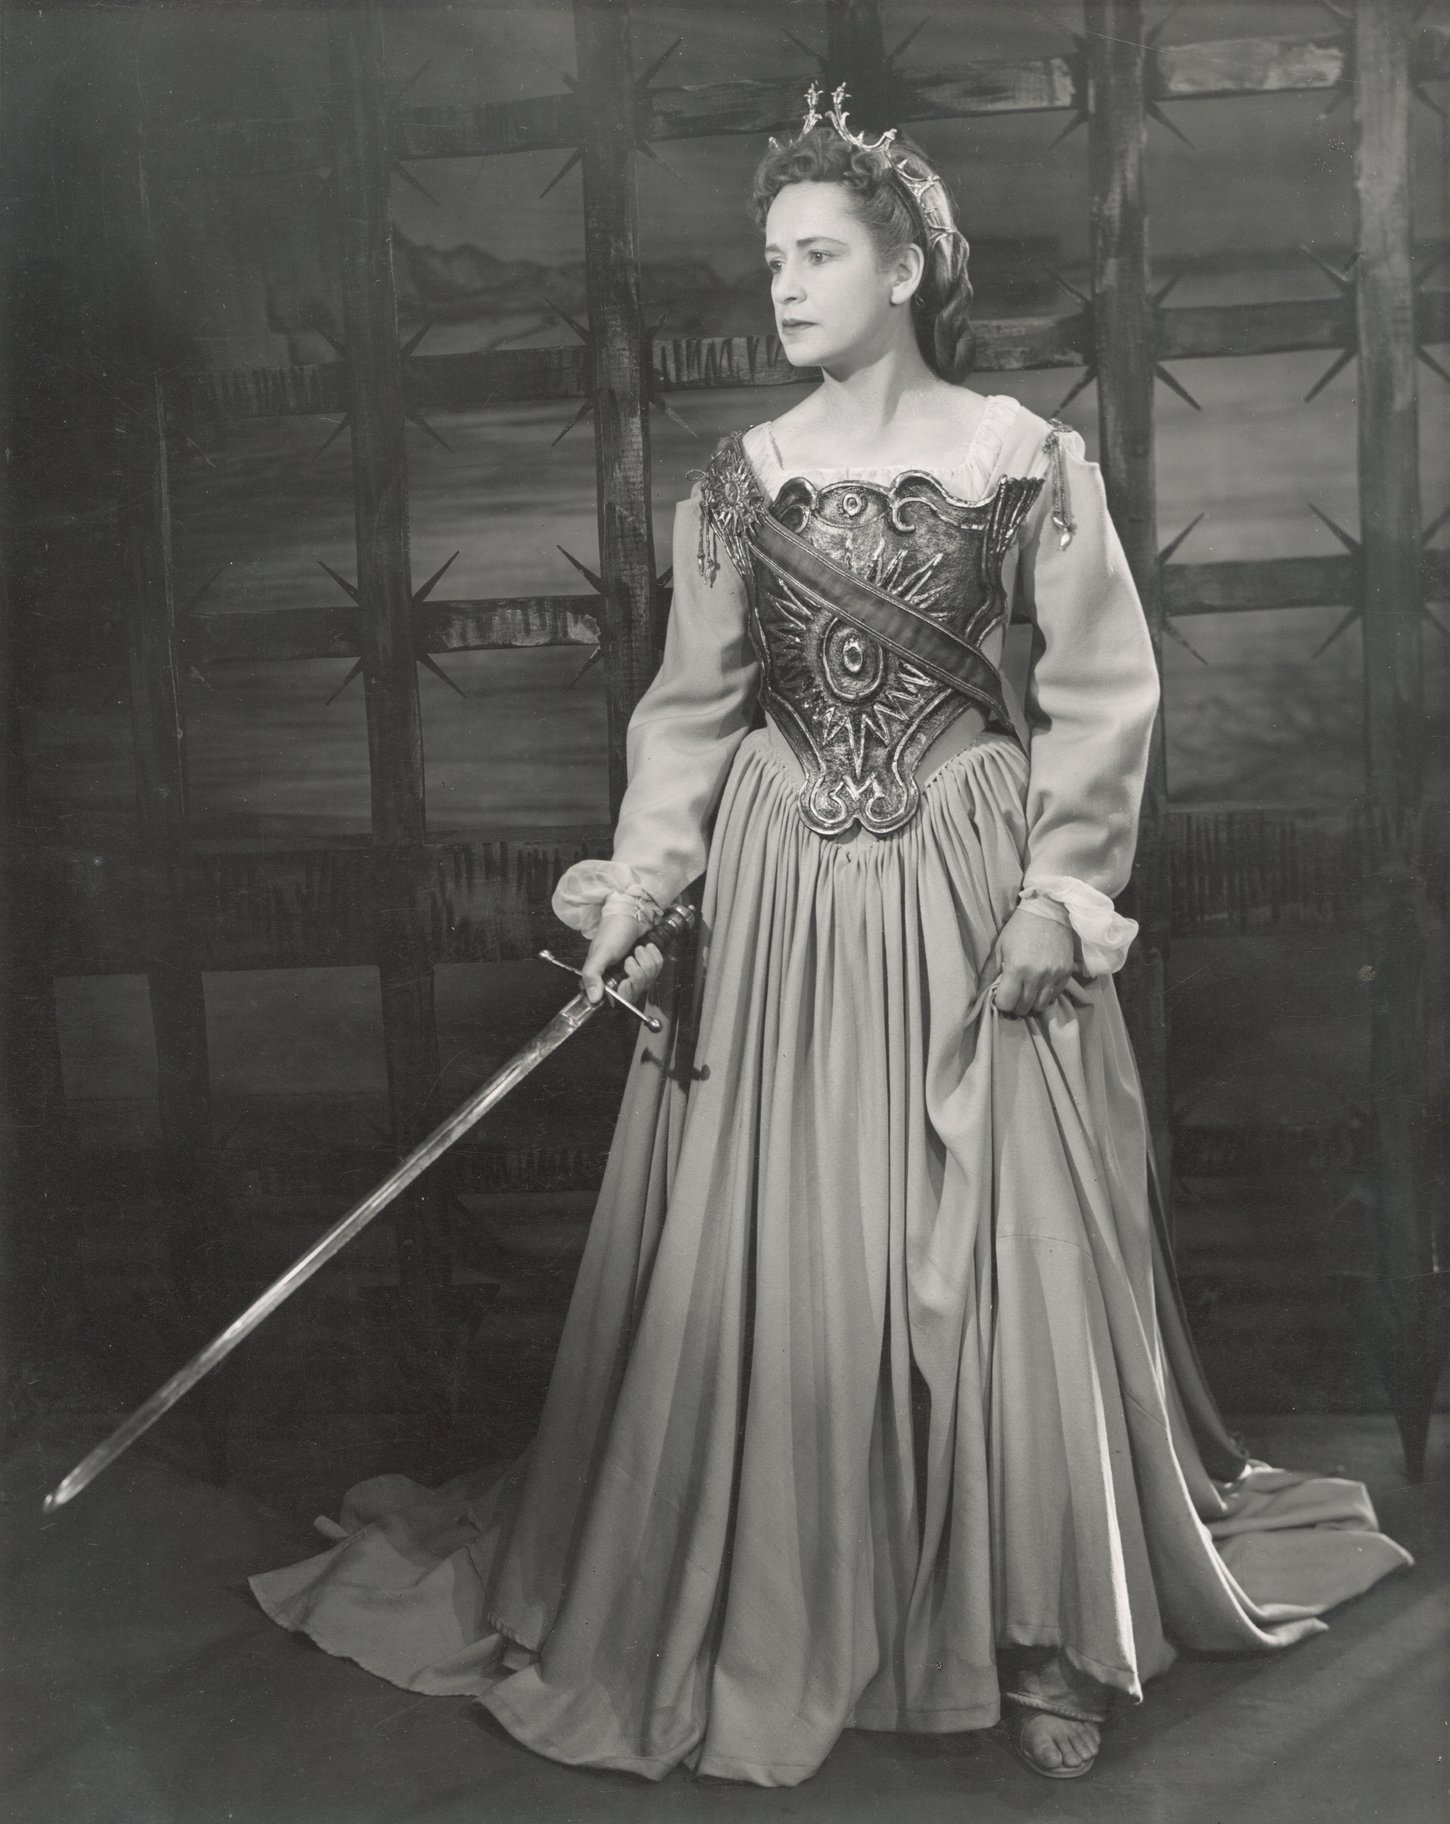 A woman in a dress and armoured chestplate holds a sword.